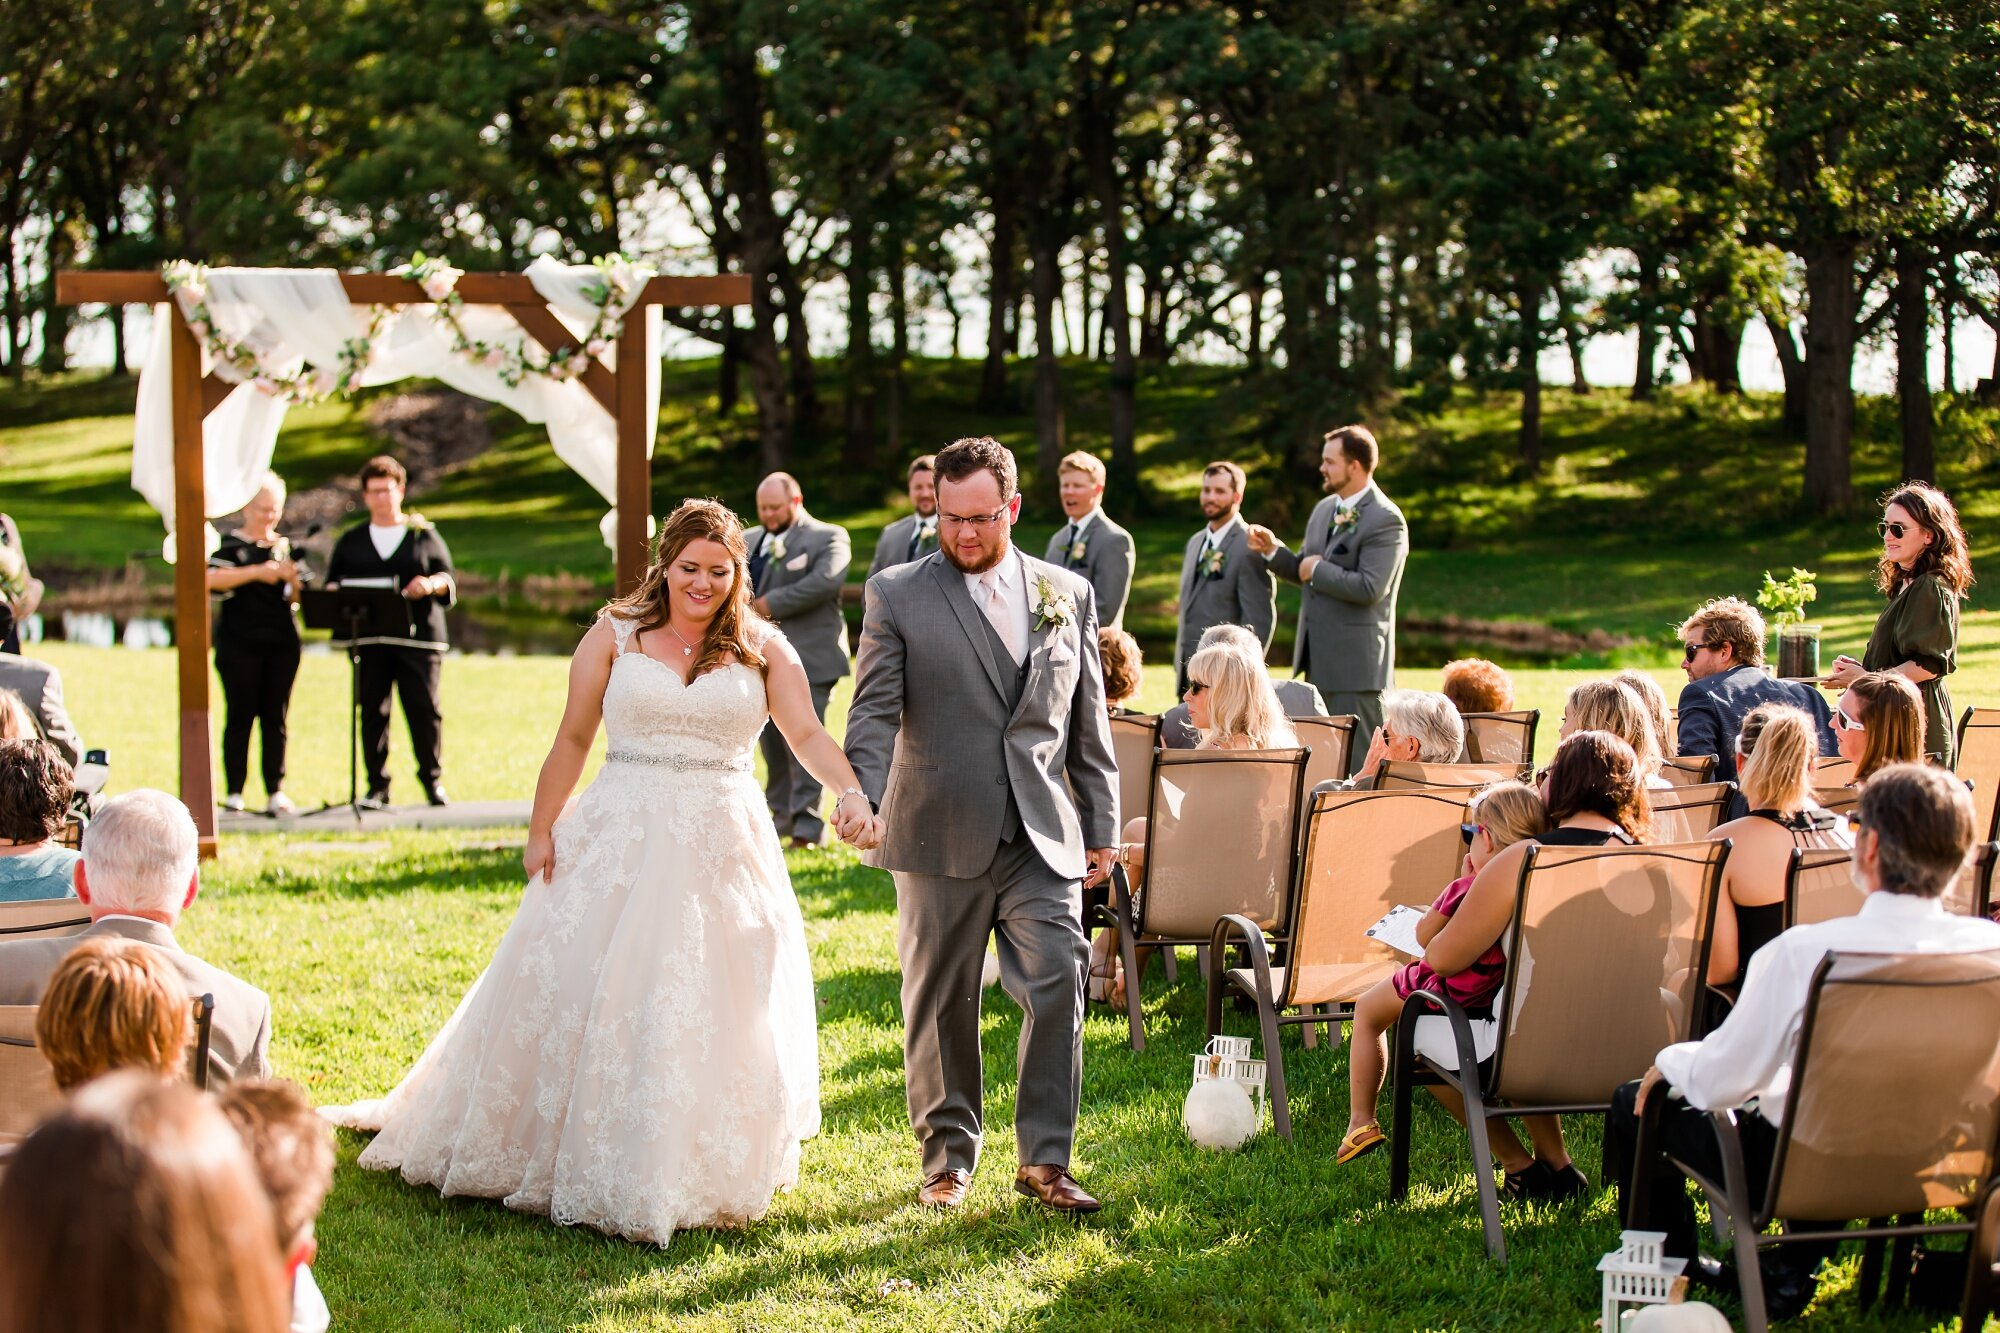 Amber Langerud Photography_Lake Park Minnesota, Outdoor Barn Wedding With Horses_6997.jpg